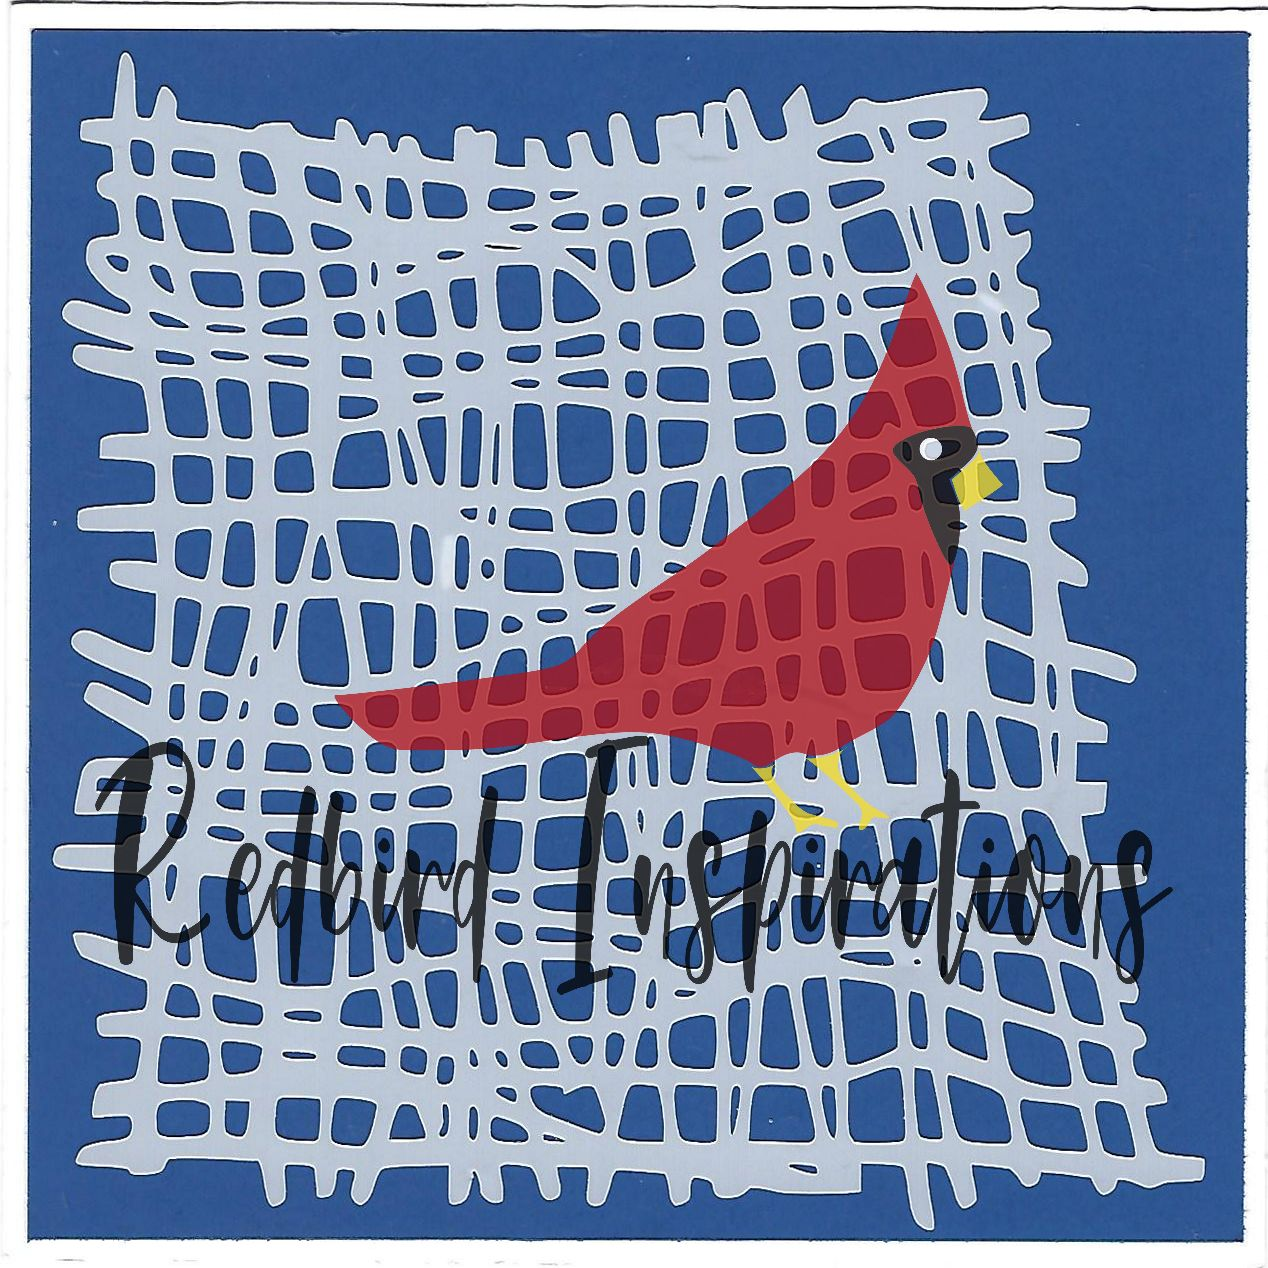 Redbird Inspirations Original Stencil, 6 x 6 Inch, Cheesecloth - Redbird Inspirations